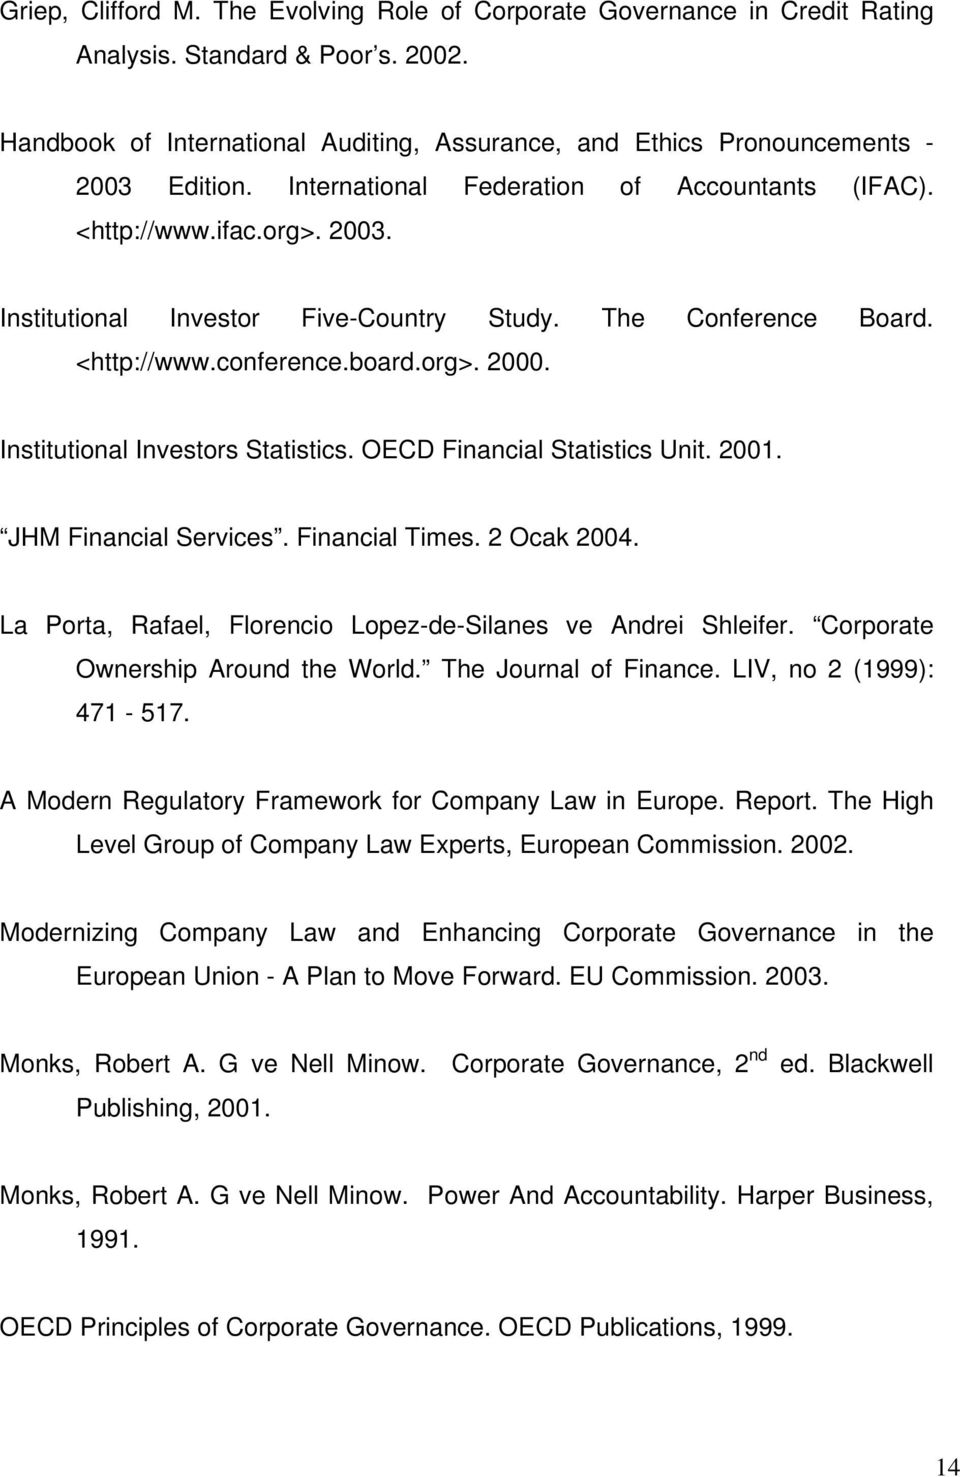 The Conference Board. <http://www.conference.board.org>. 2000. Institutional Investors Statistics. OECD Financial Statistics Unit. 2001. JHM Financial Services. Financial Times. 2 Ocak 2004.